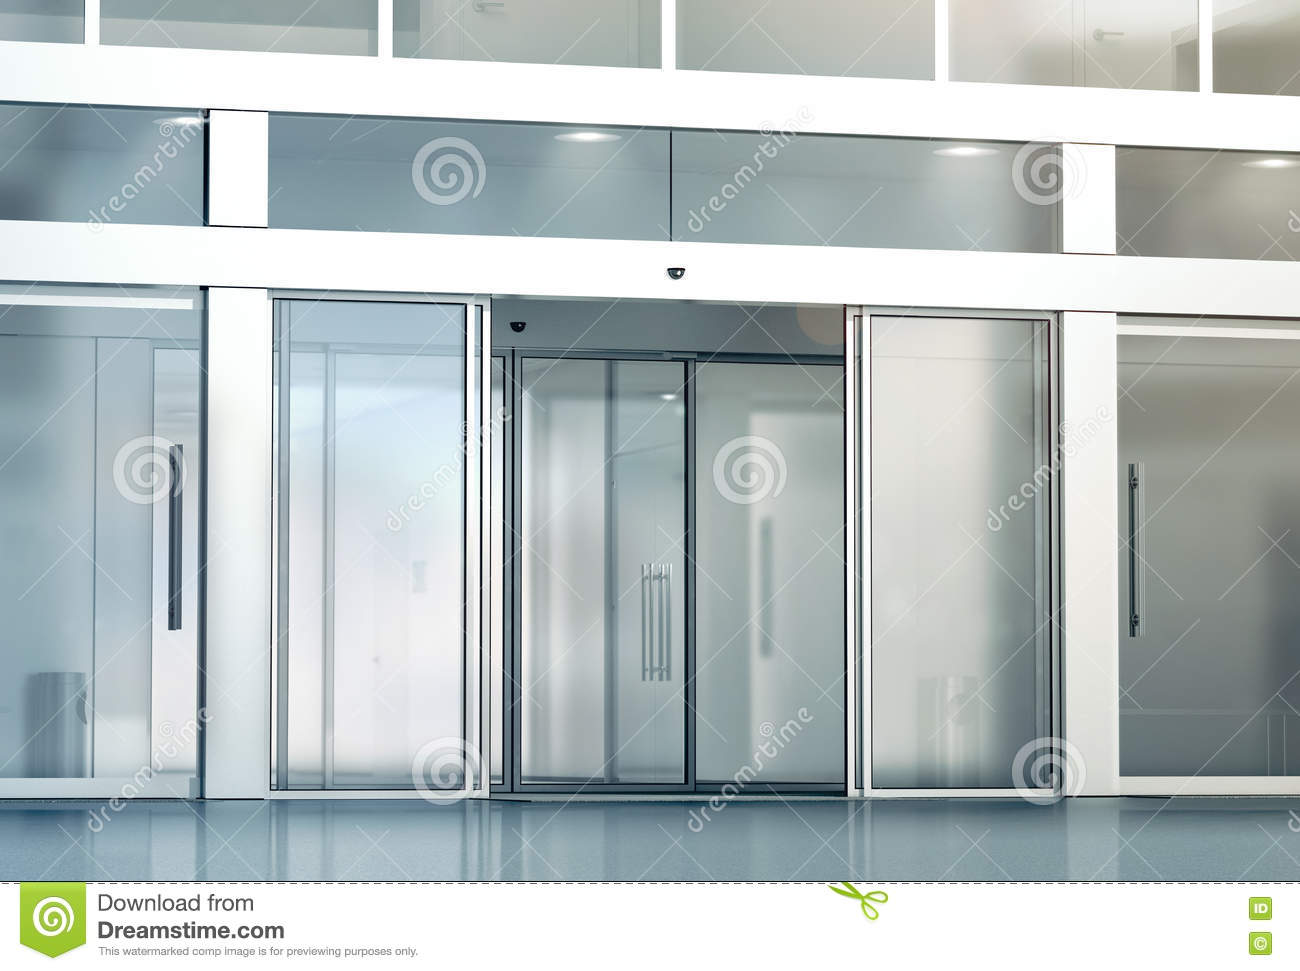 Blank Sliding Glass Doors Entrance Mockup 3d Rendering Commercial Automatic Slide Entry Mock Up Office Building Exterior Template